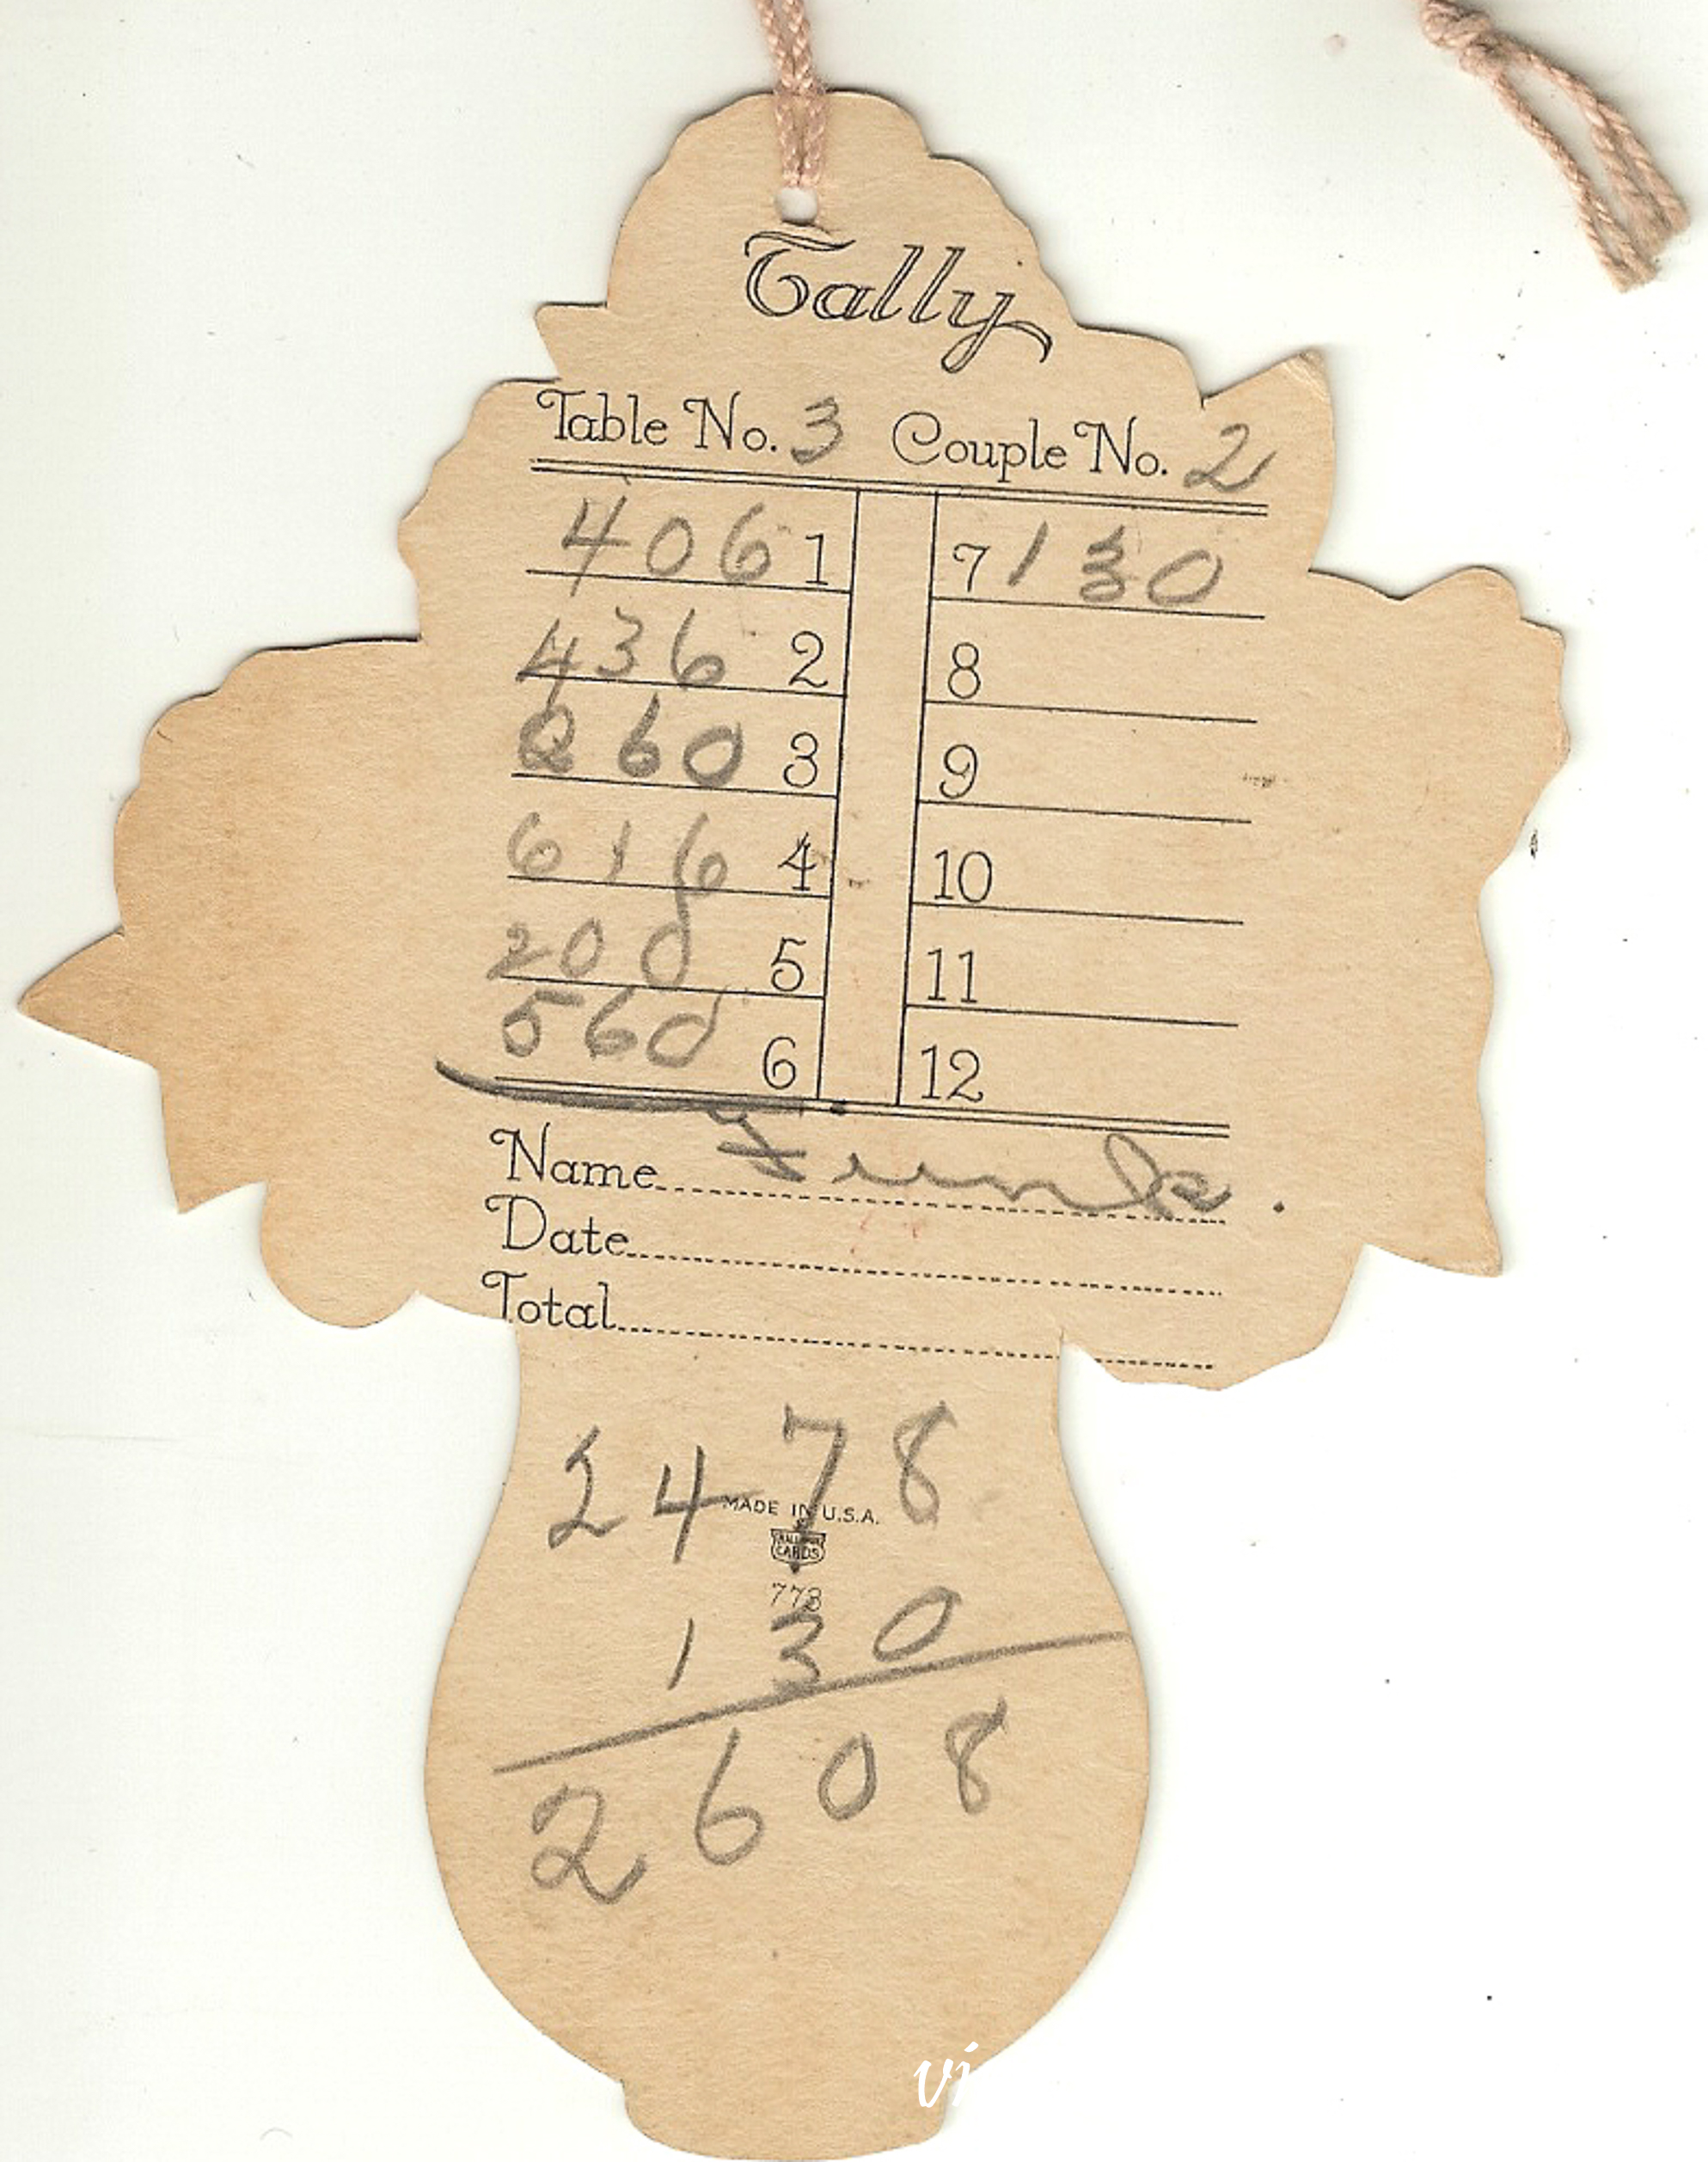 Vintage Bridge Tally Card #vintage #artdeco #bridge #bridgetallycard #vintagebridgetally